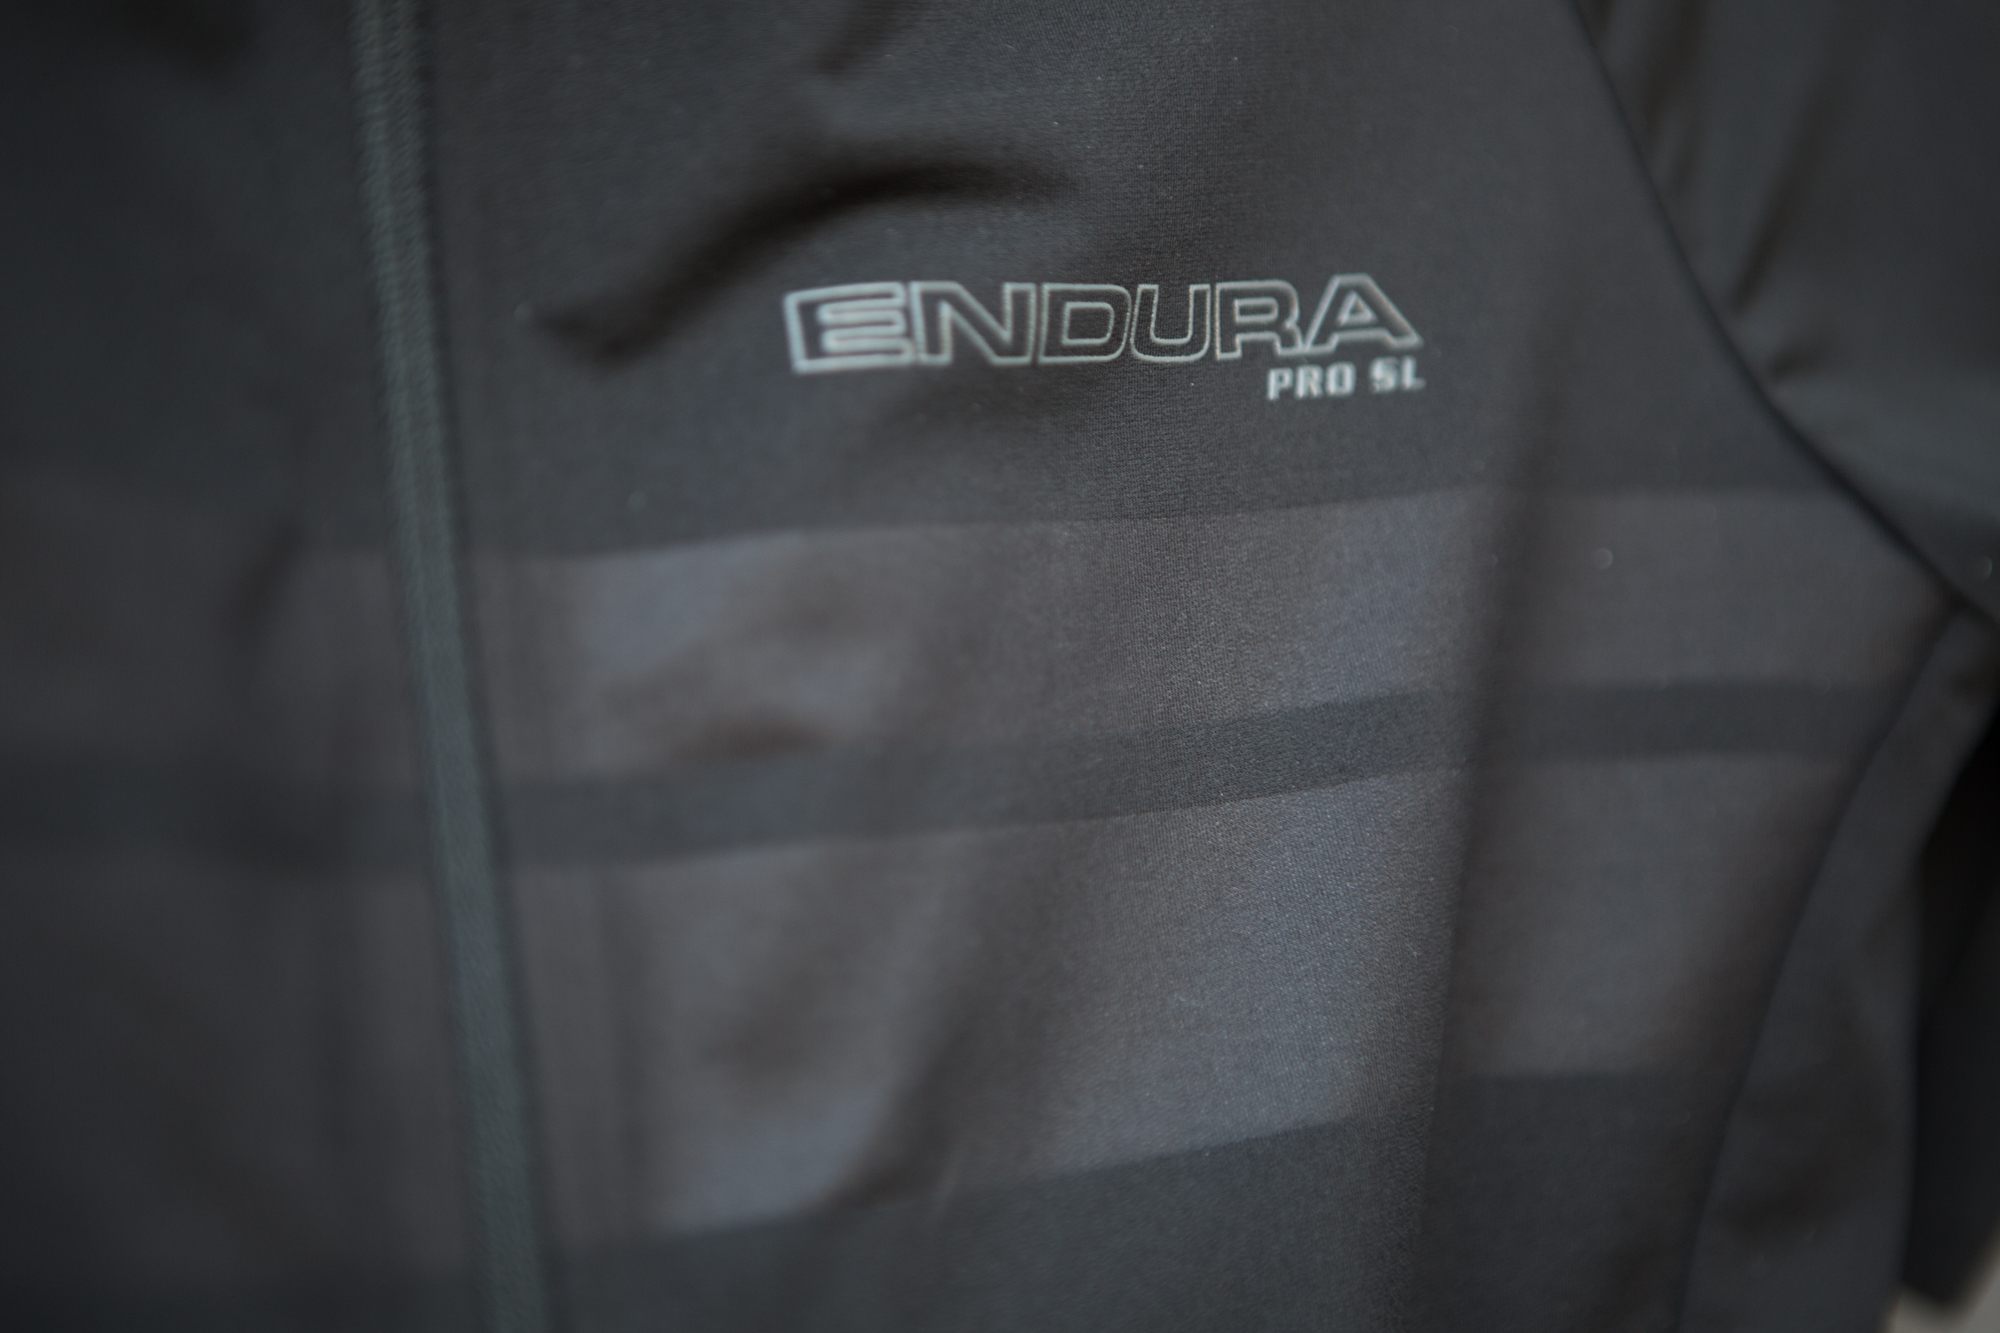 Endura Pro SL Cycling Kit Review: The Best For a Great Price